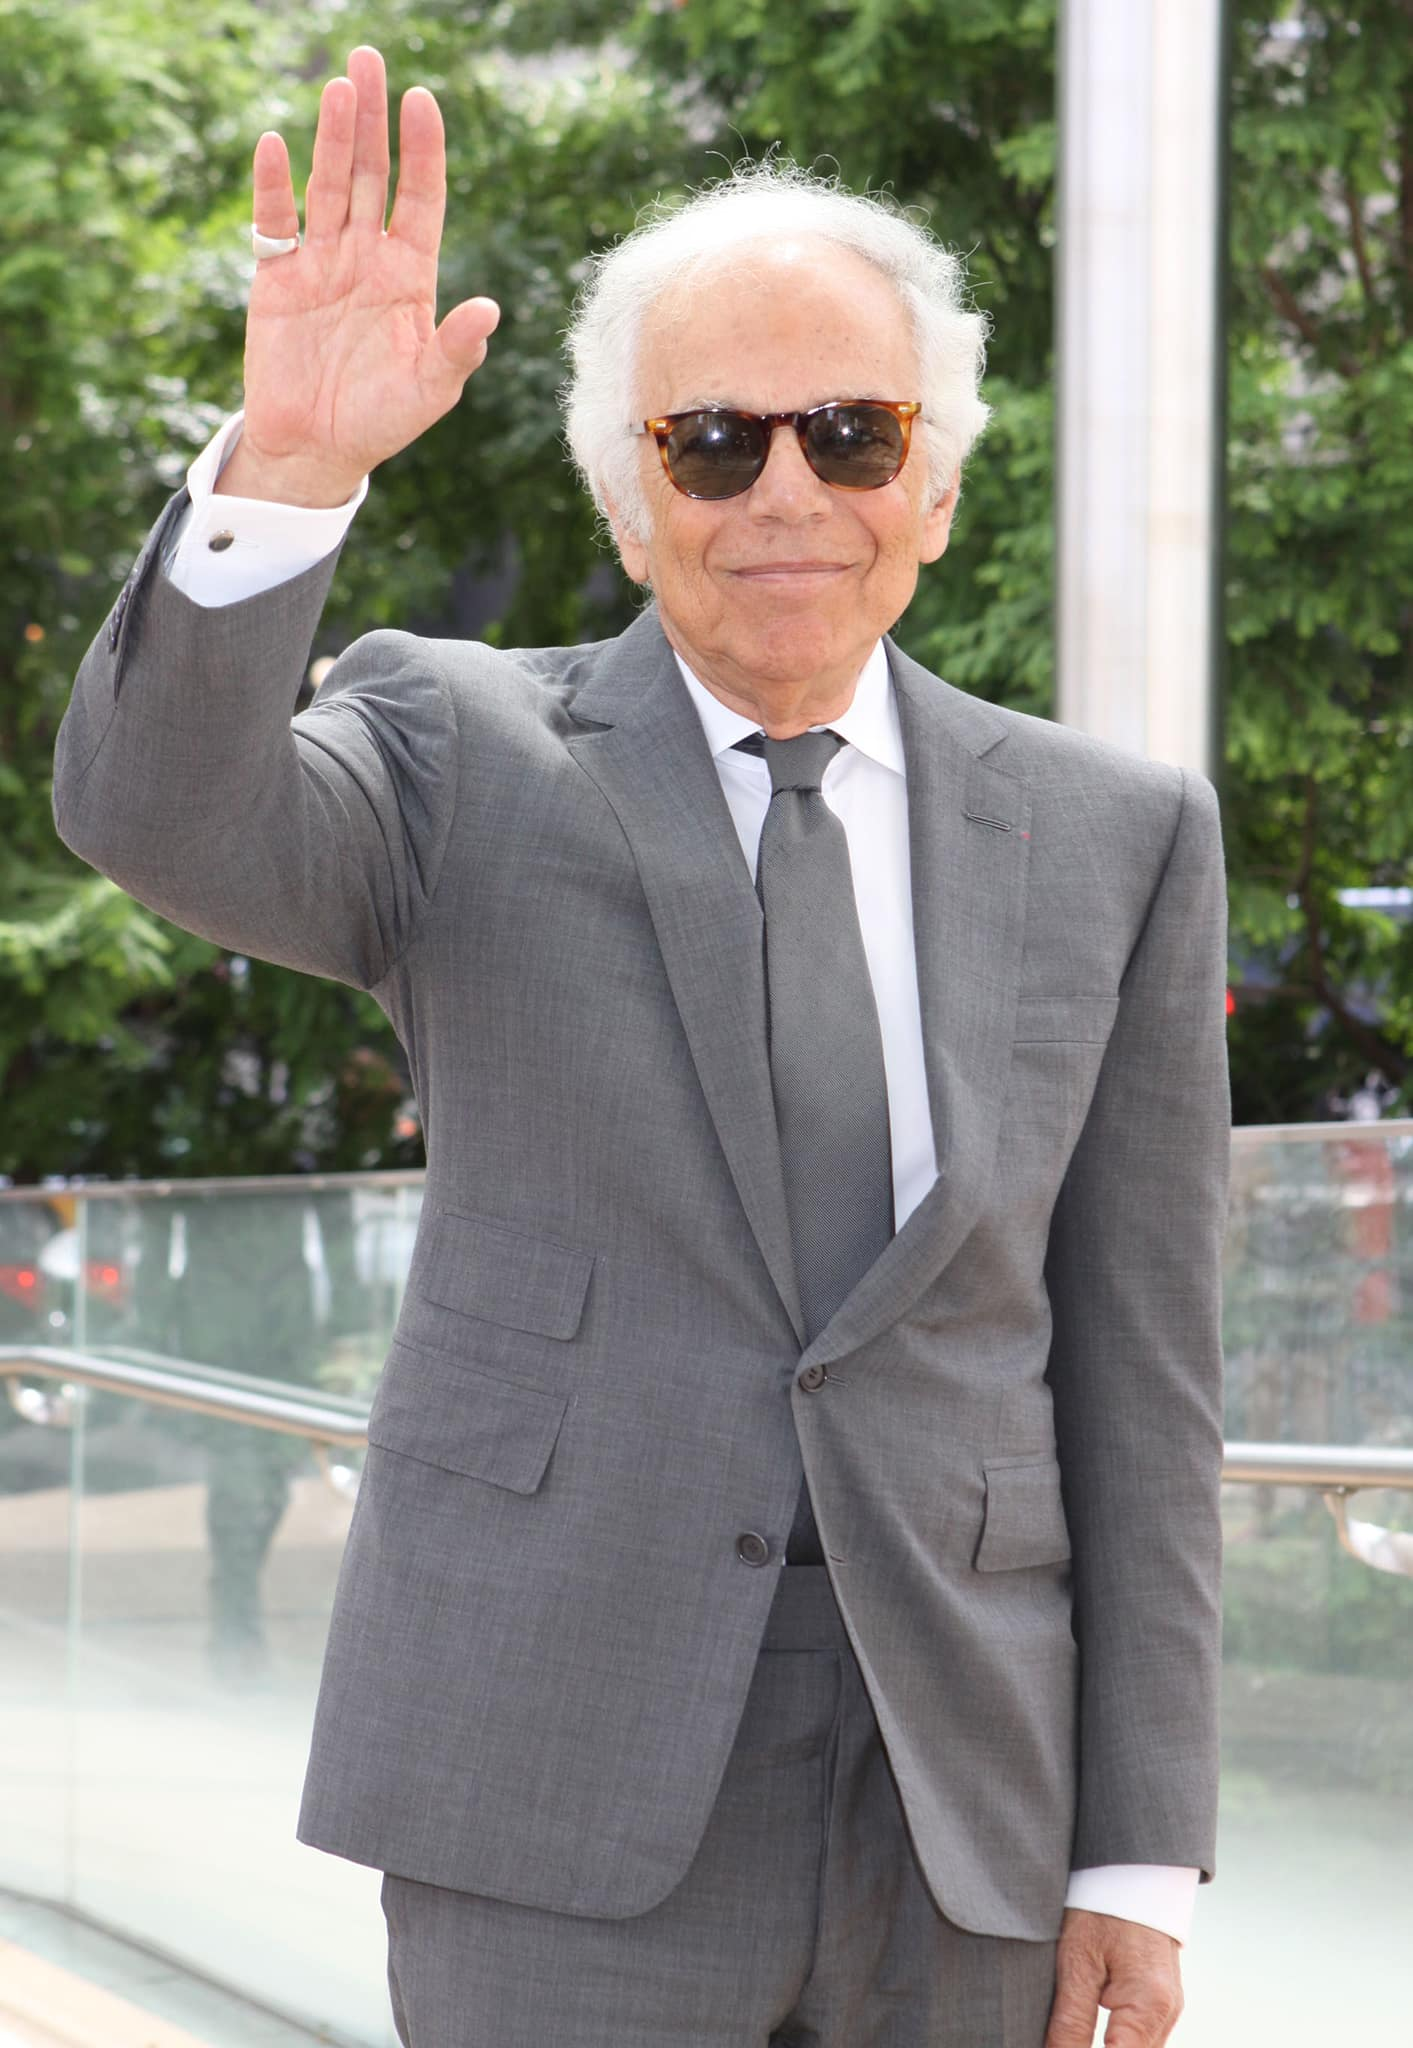 Ralph Lauren pictured at the New York Fashion Week lunch in honor of Carolina Herrera on September 3, 2014